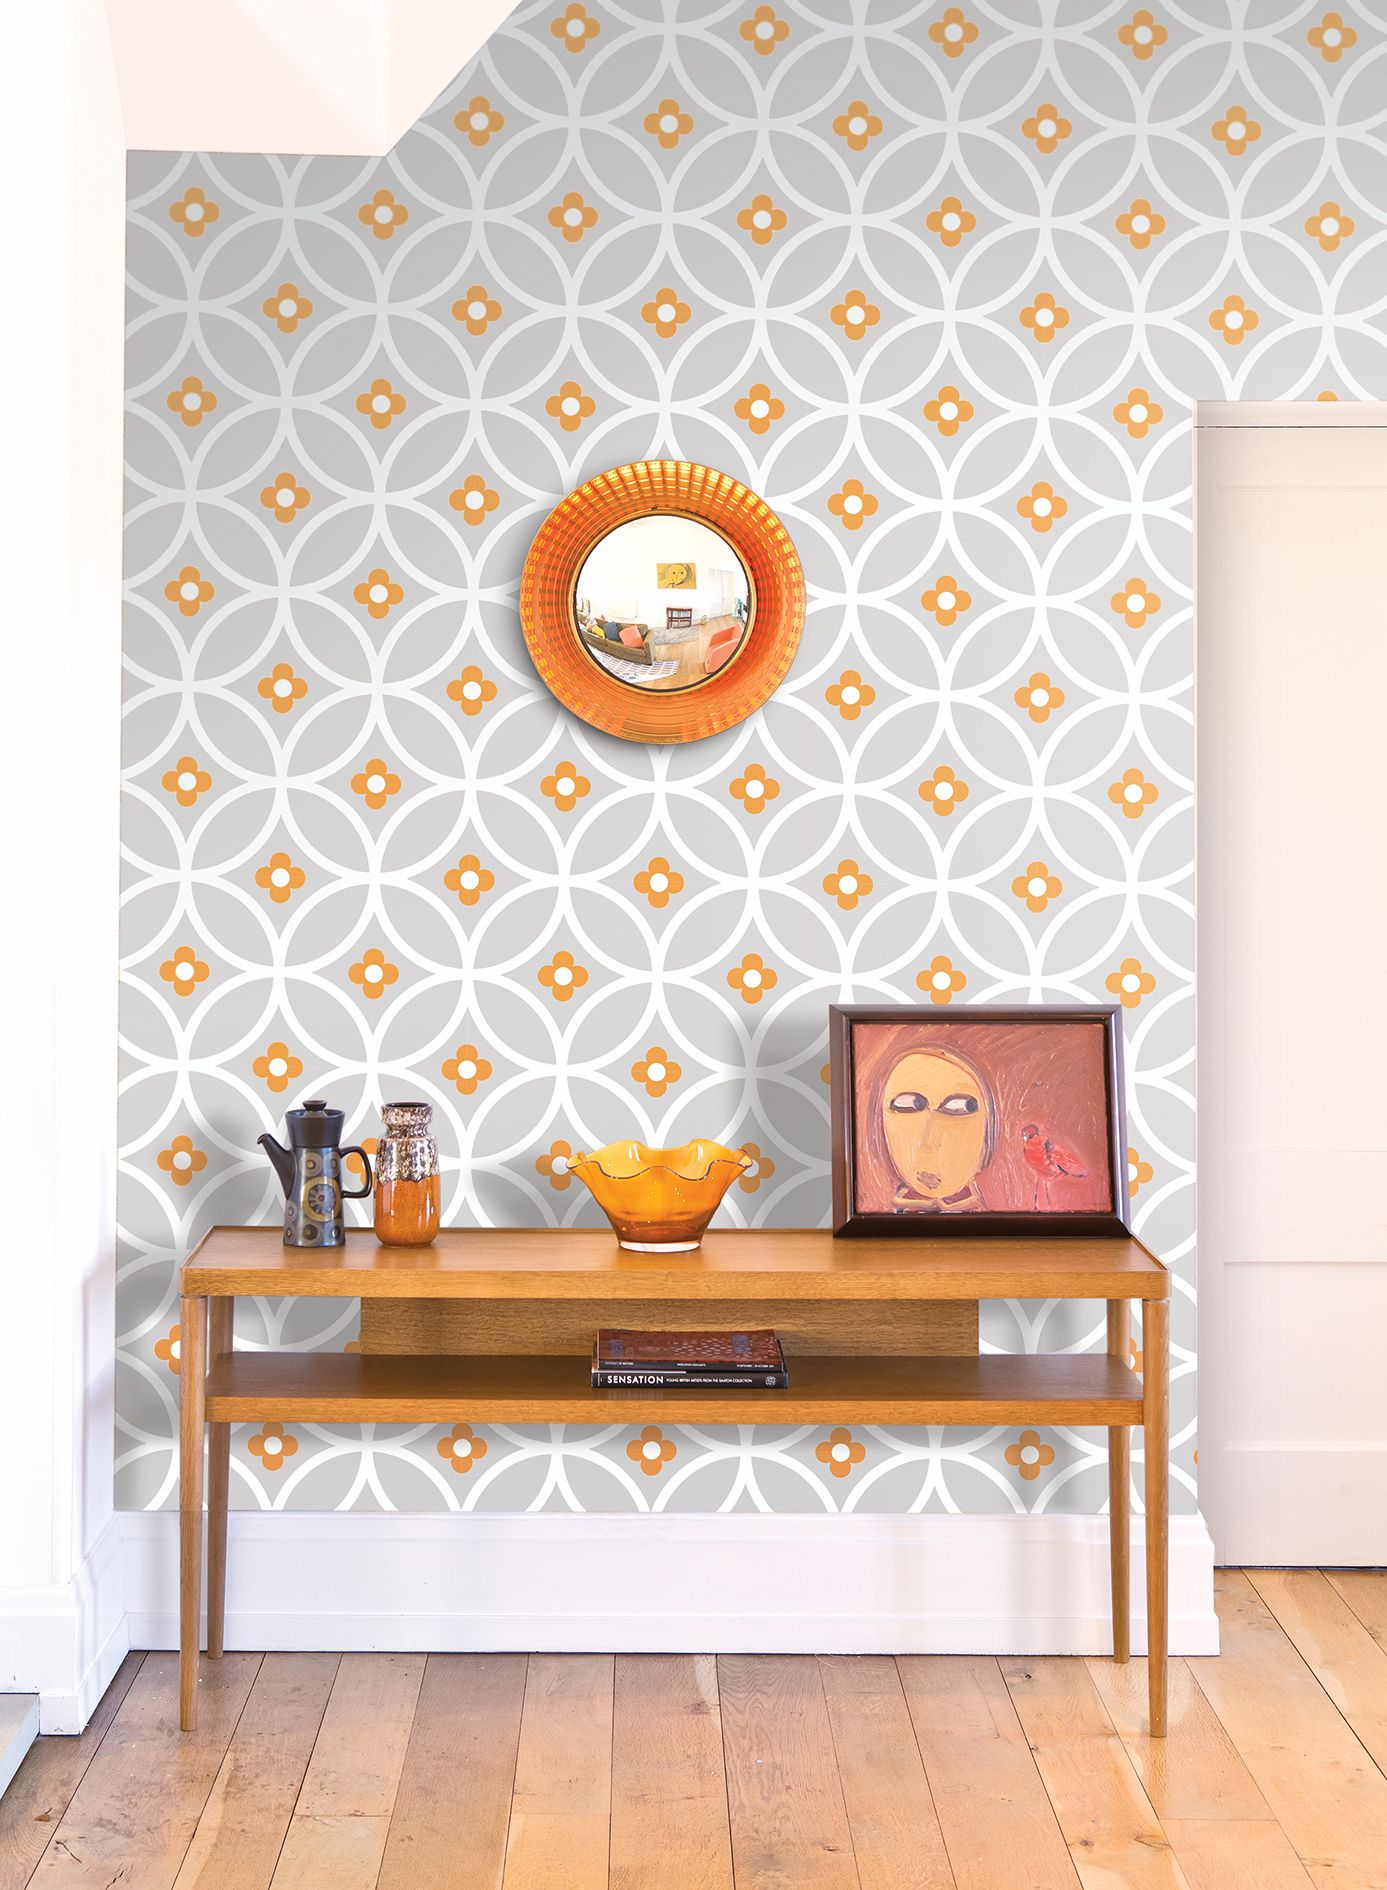 Daisy Chain wallpaper from Layla Faye Retro modern